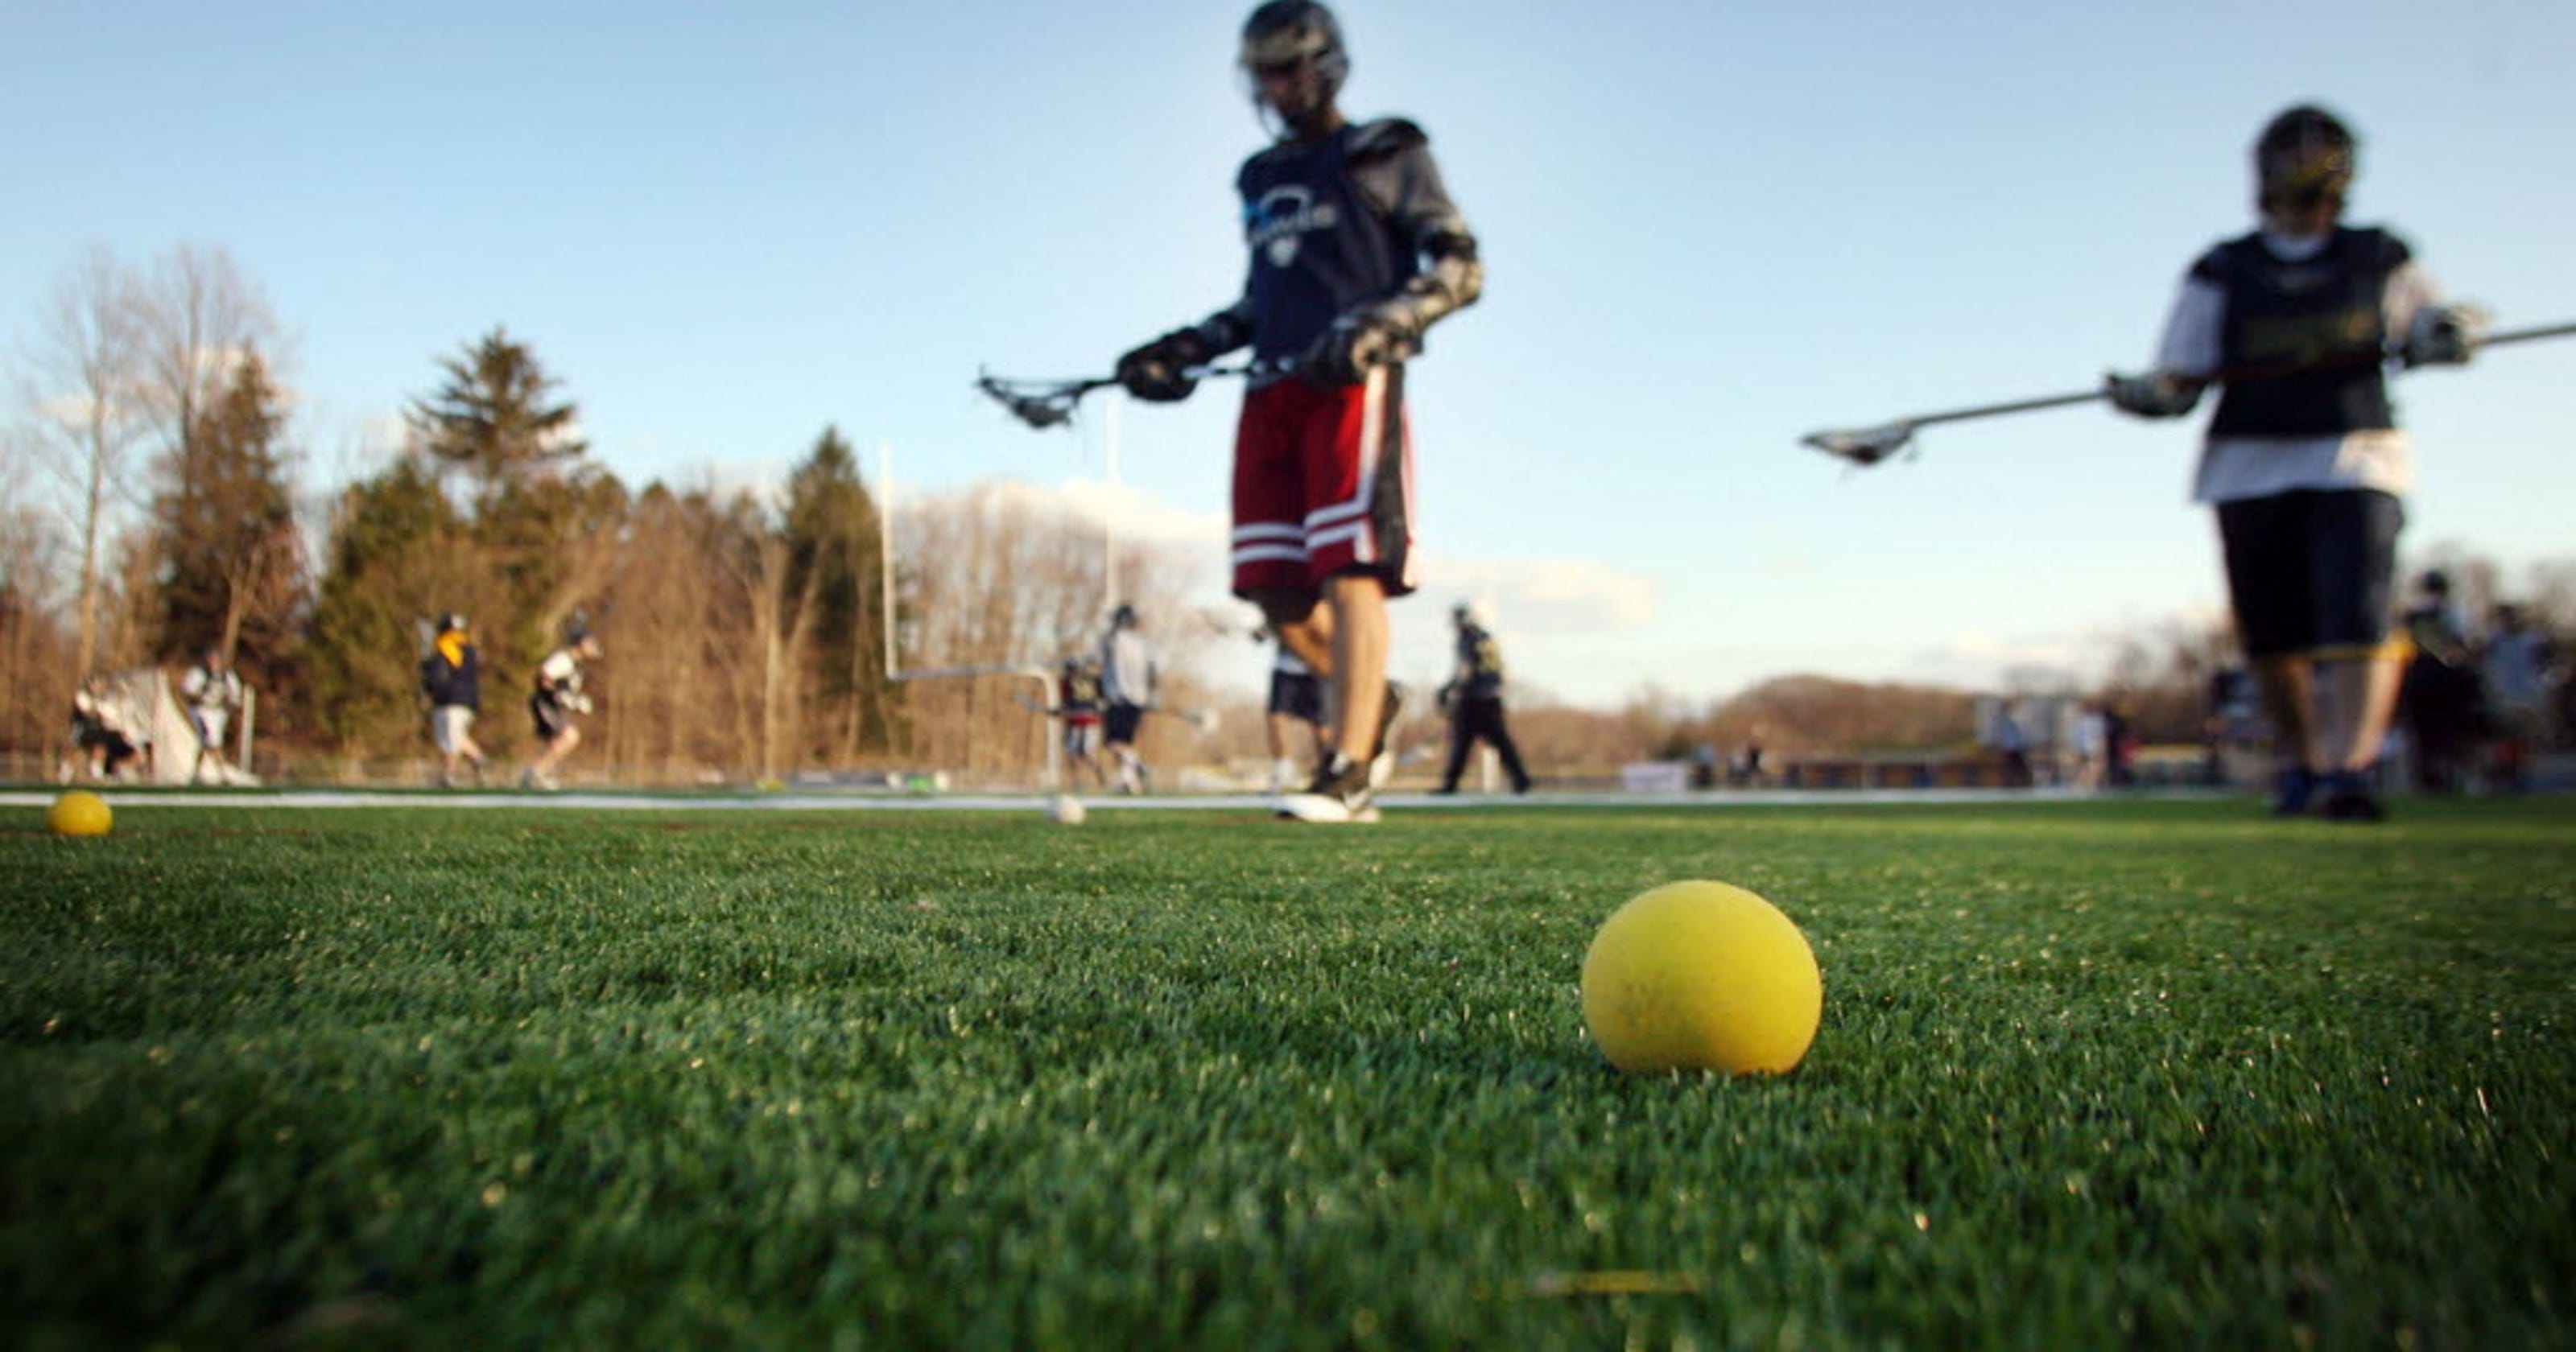 West Essex boys lacrosse excited about new season